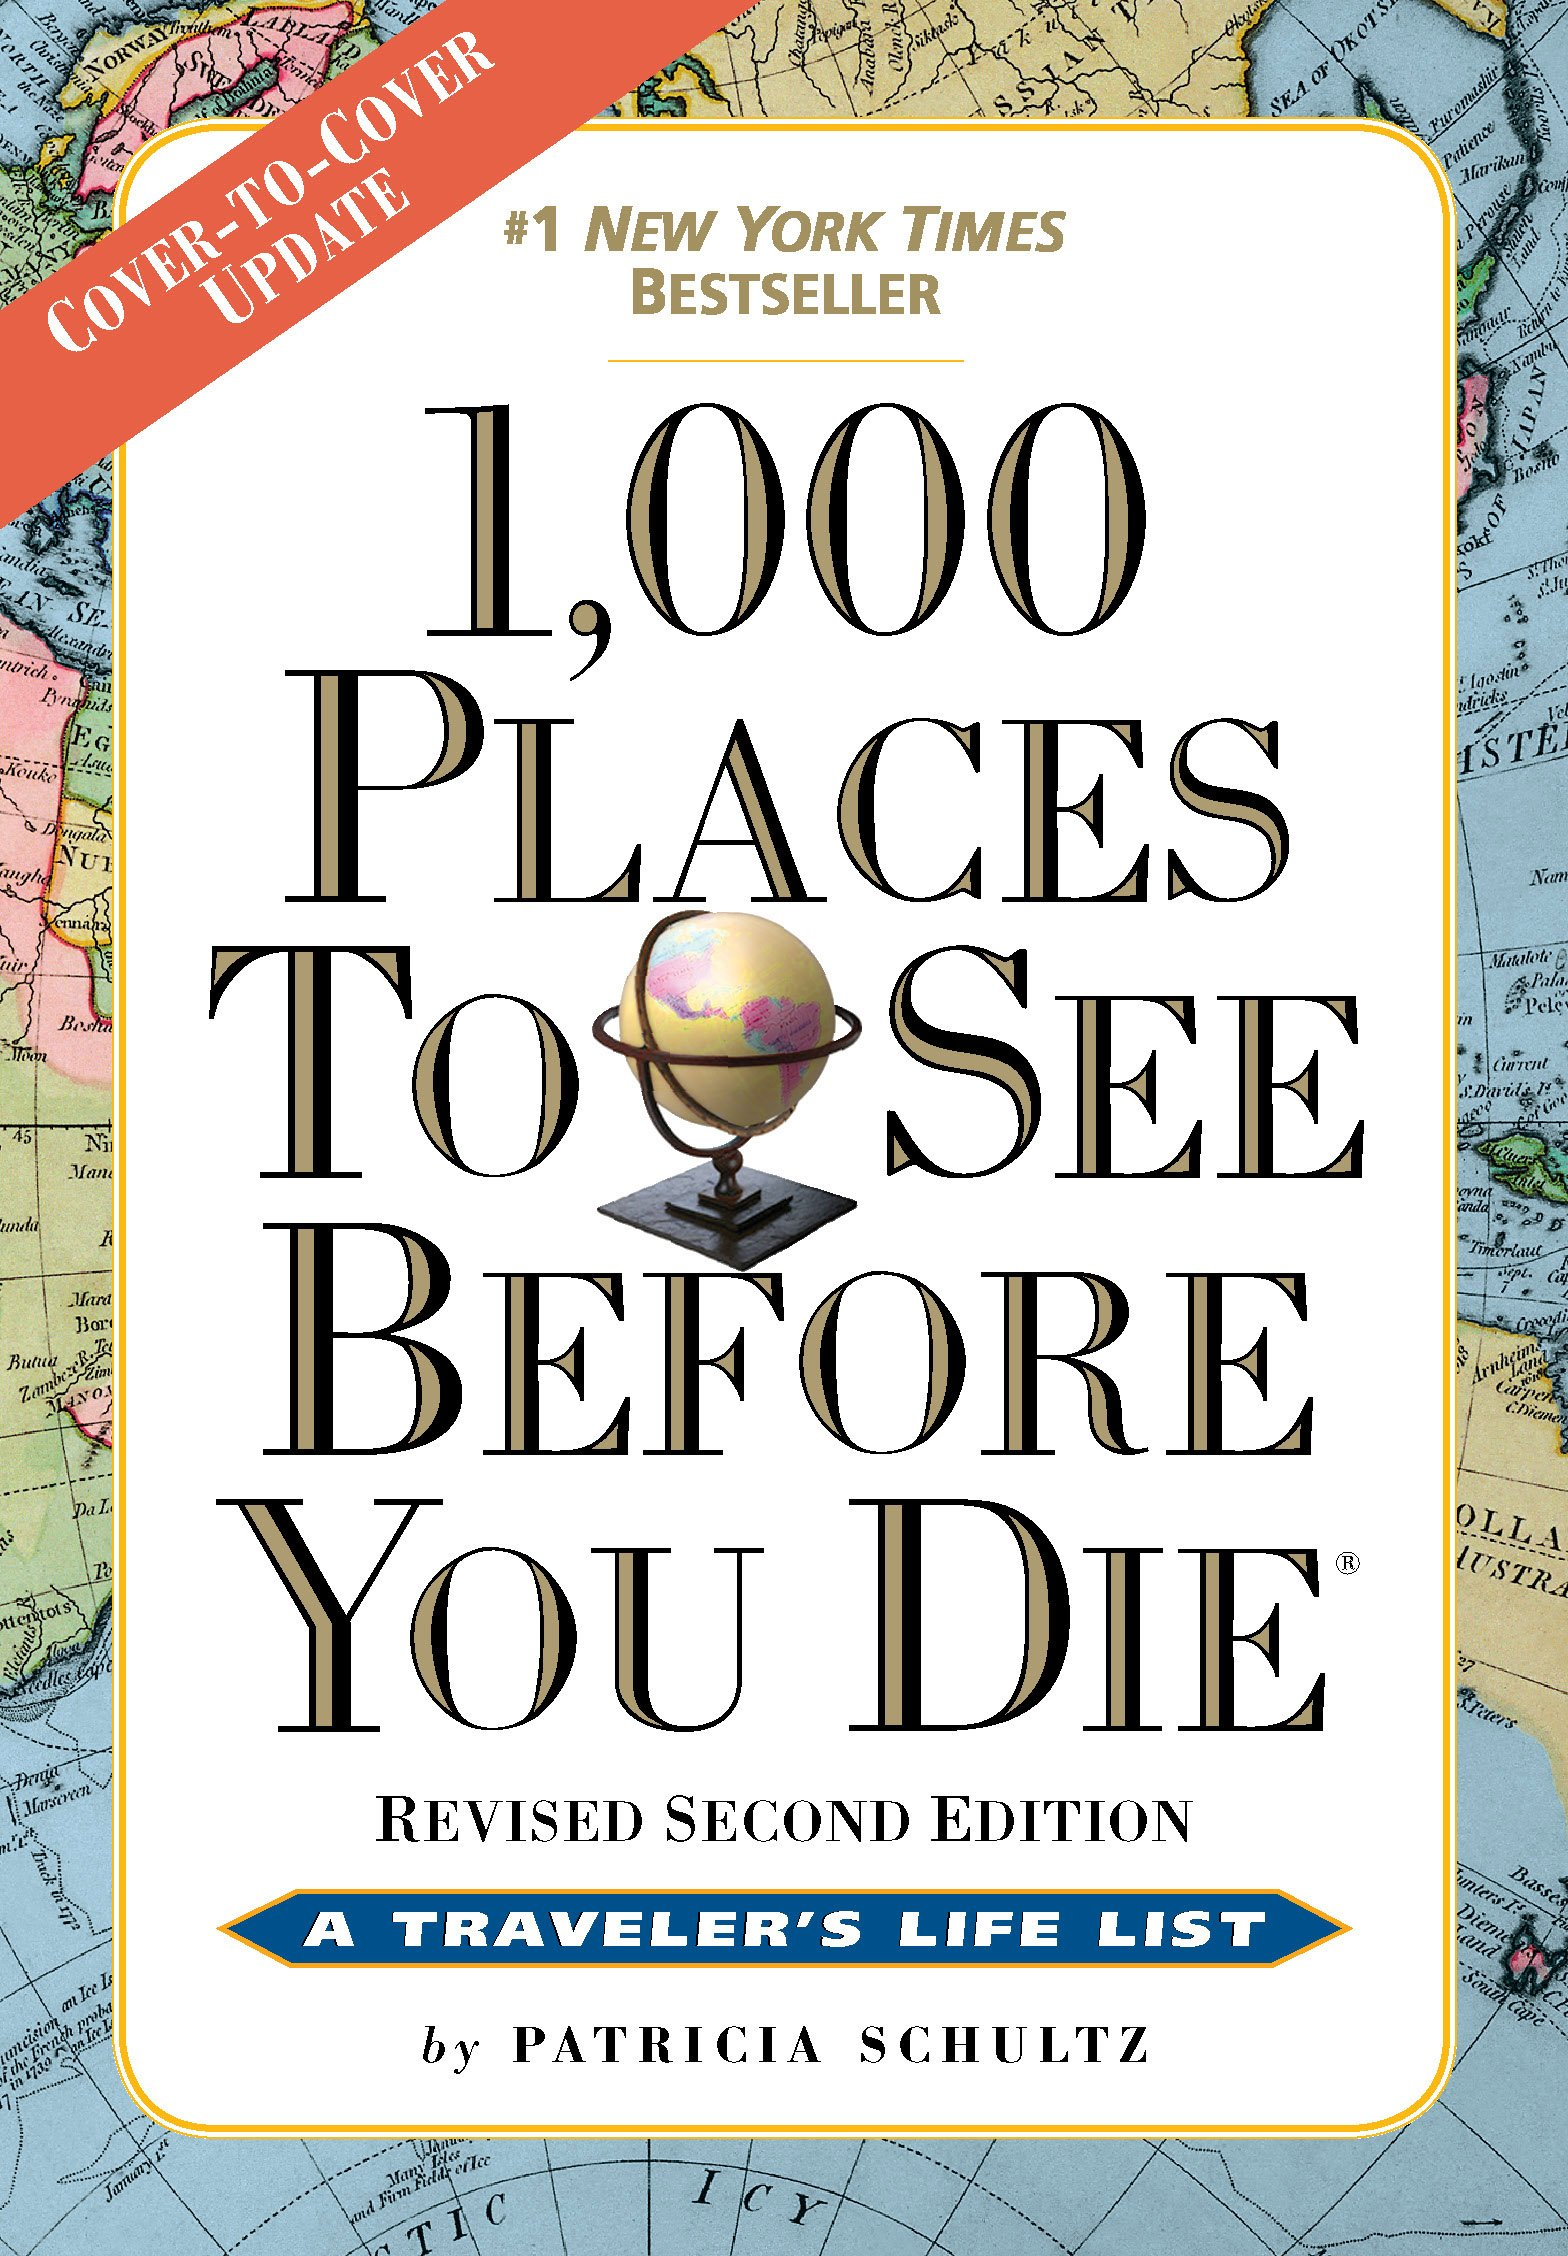 Image Of1,000 Places To See Before You Die: Revised Second Edition (English Edition)